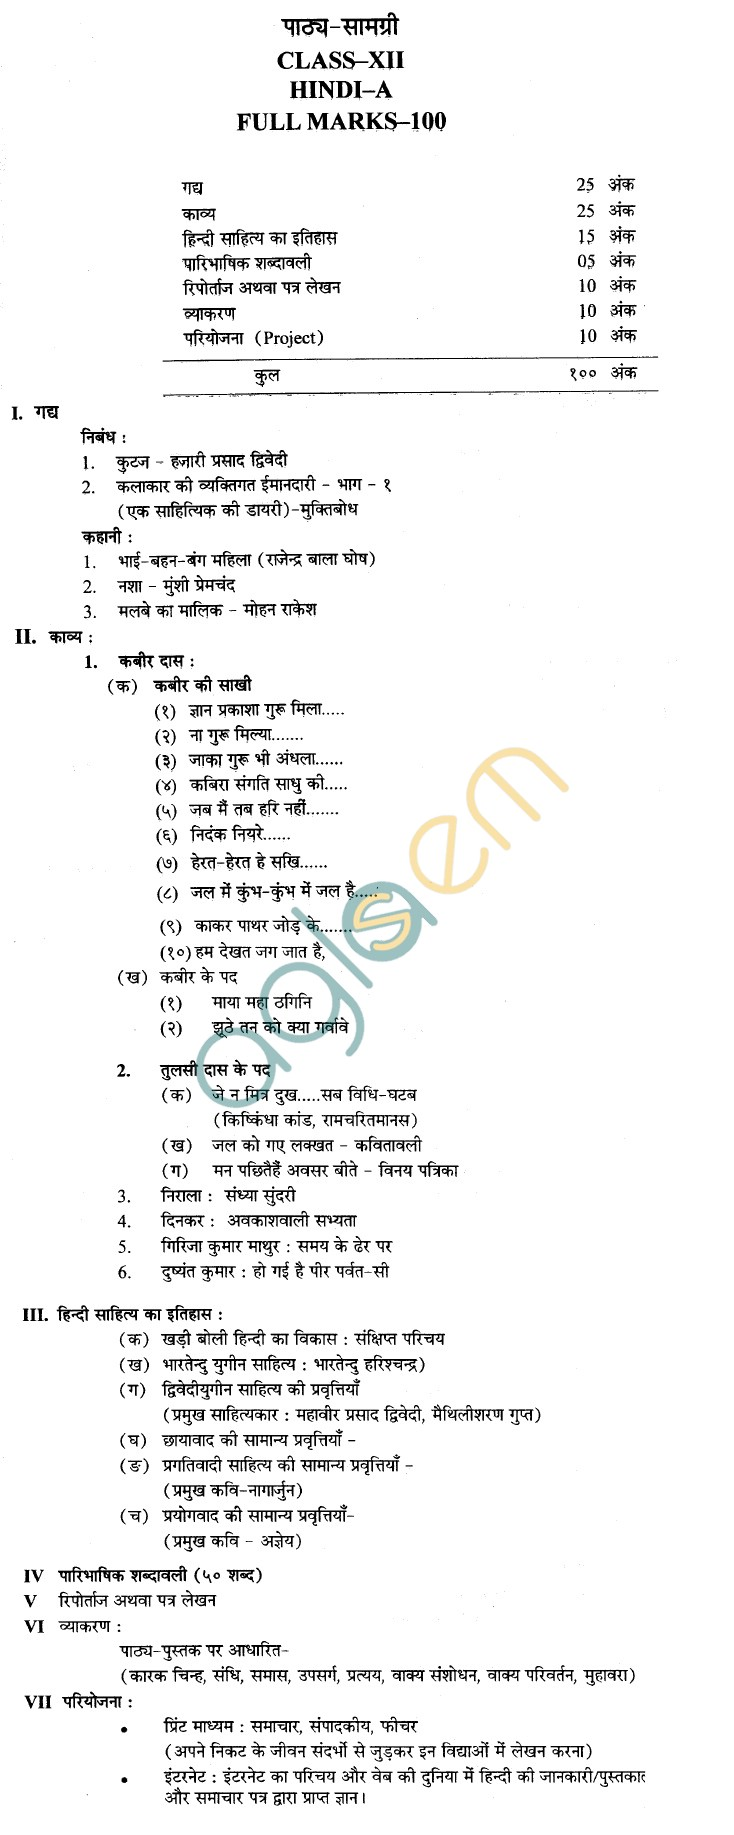 West Bengal Board Syllabus for Class 12 - Sanskrit